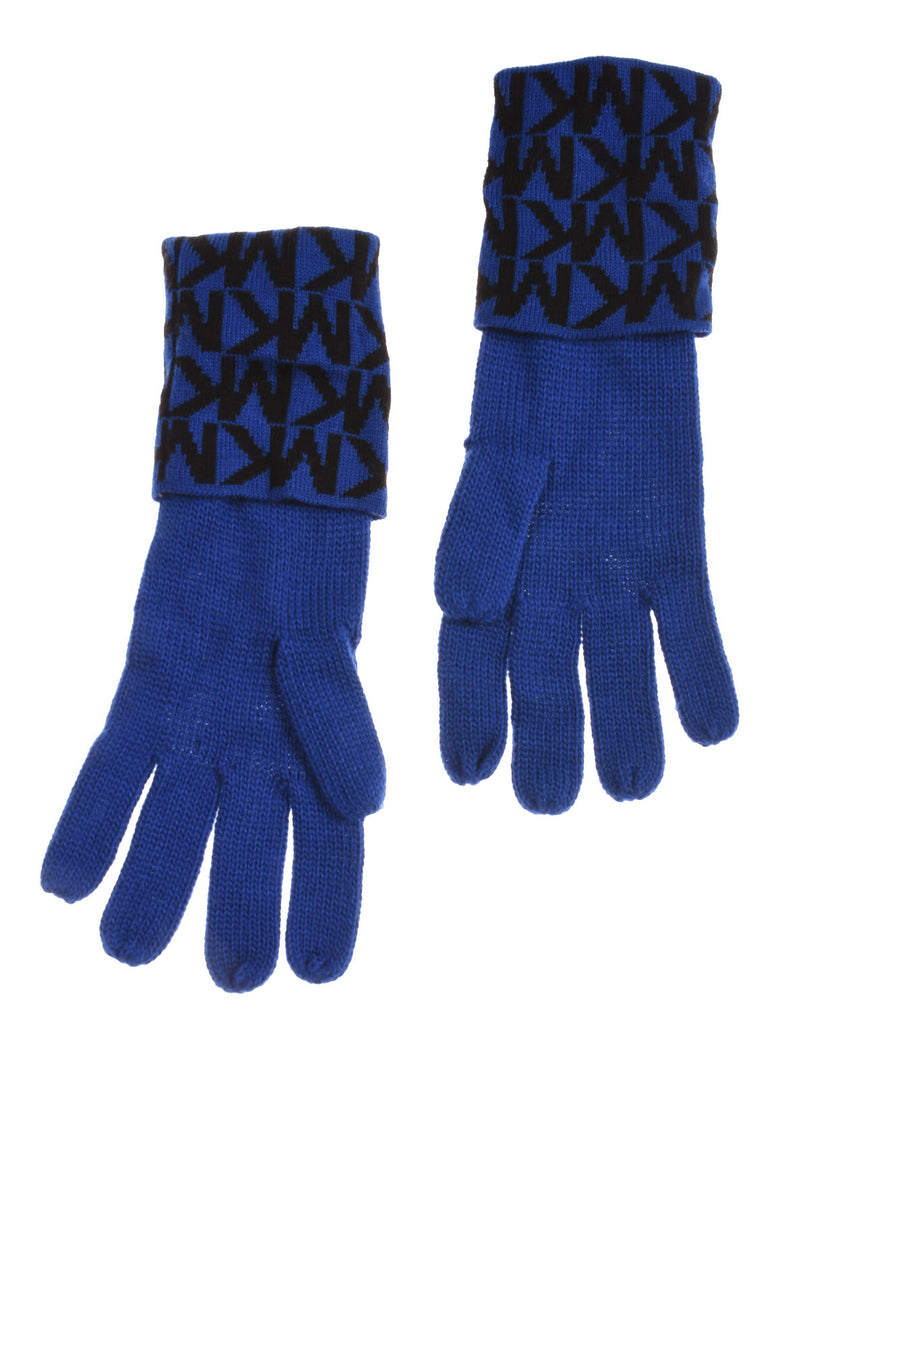 USED Michael Kors Women's Gloves N/A Blue & Black